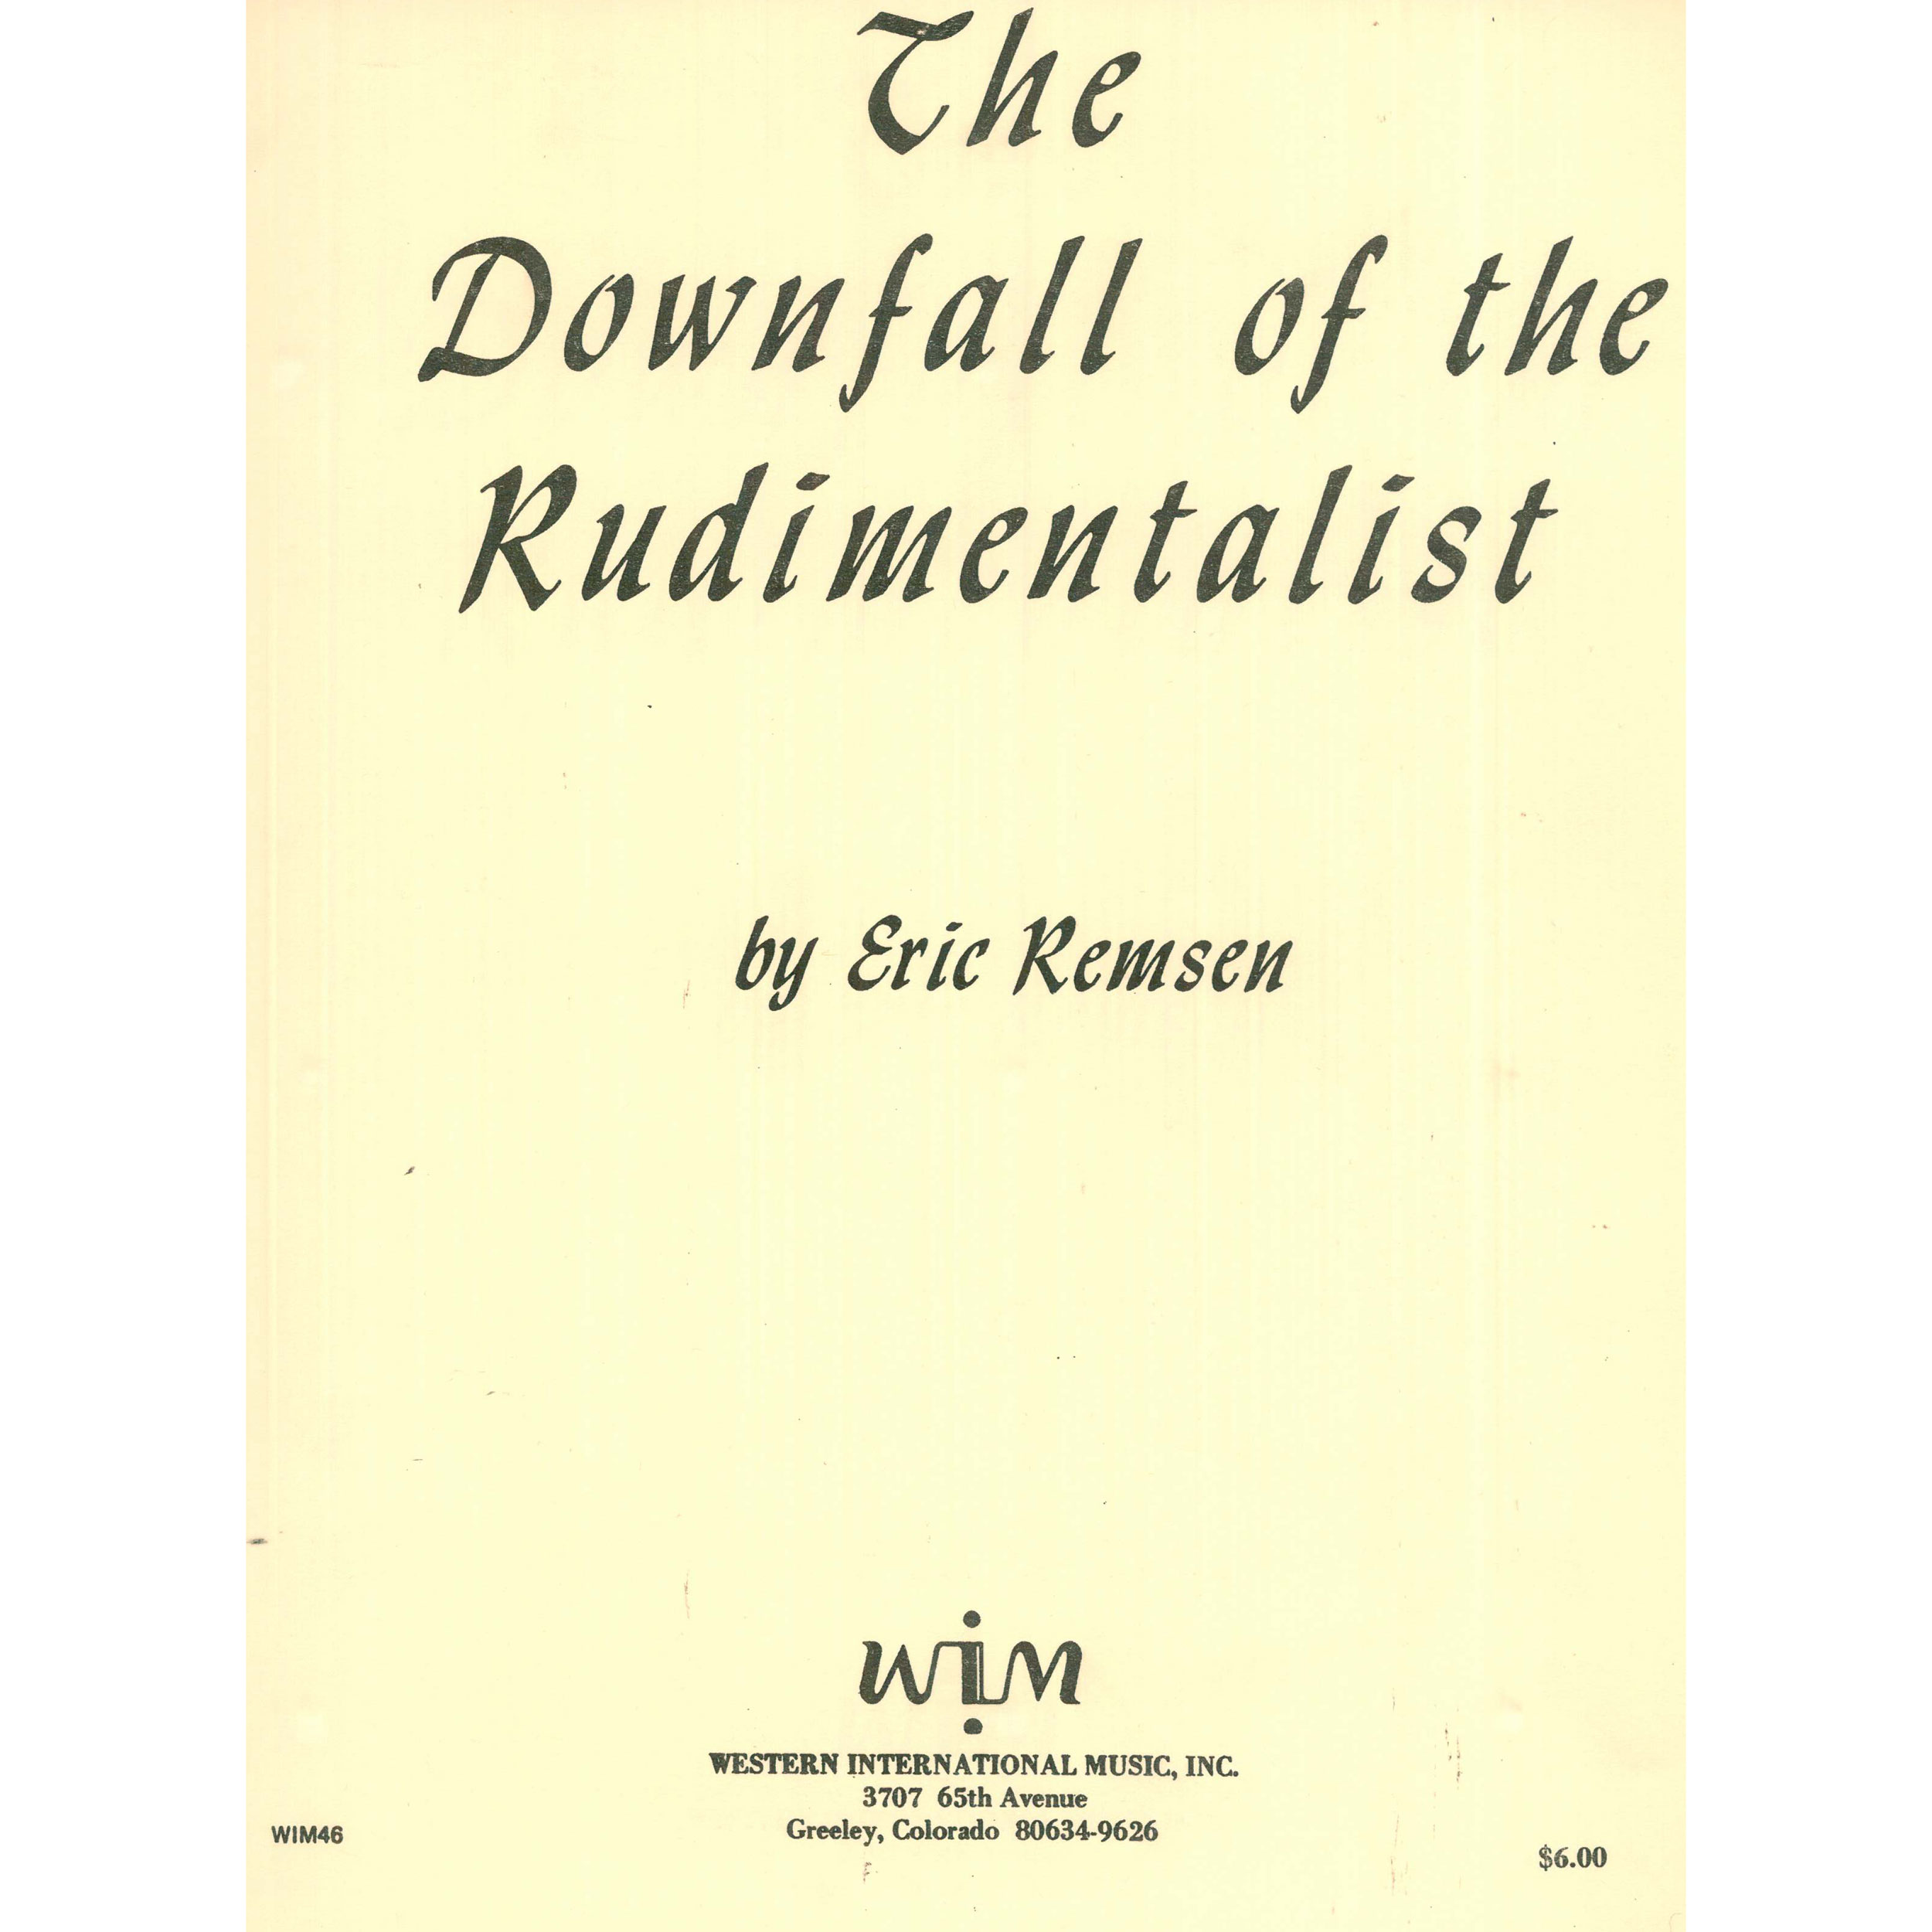 The Downfall of the Rudimentalist by Eric Remsen